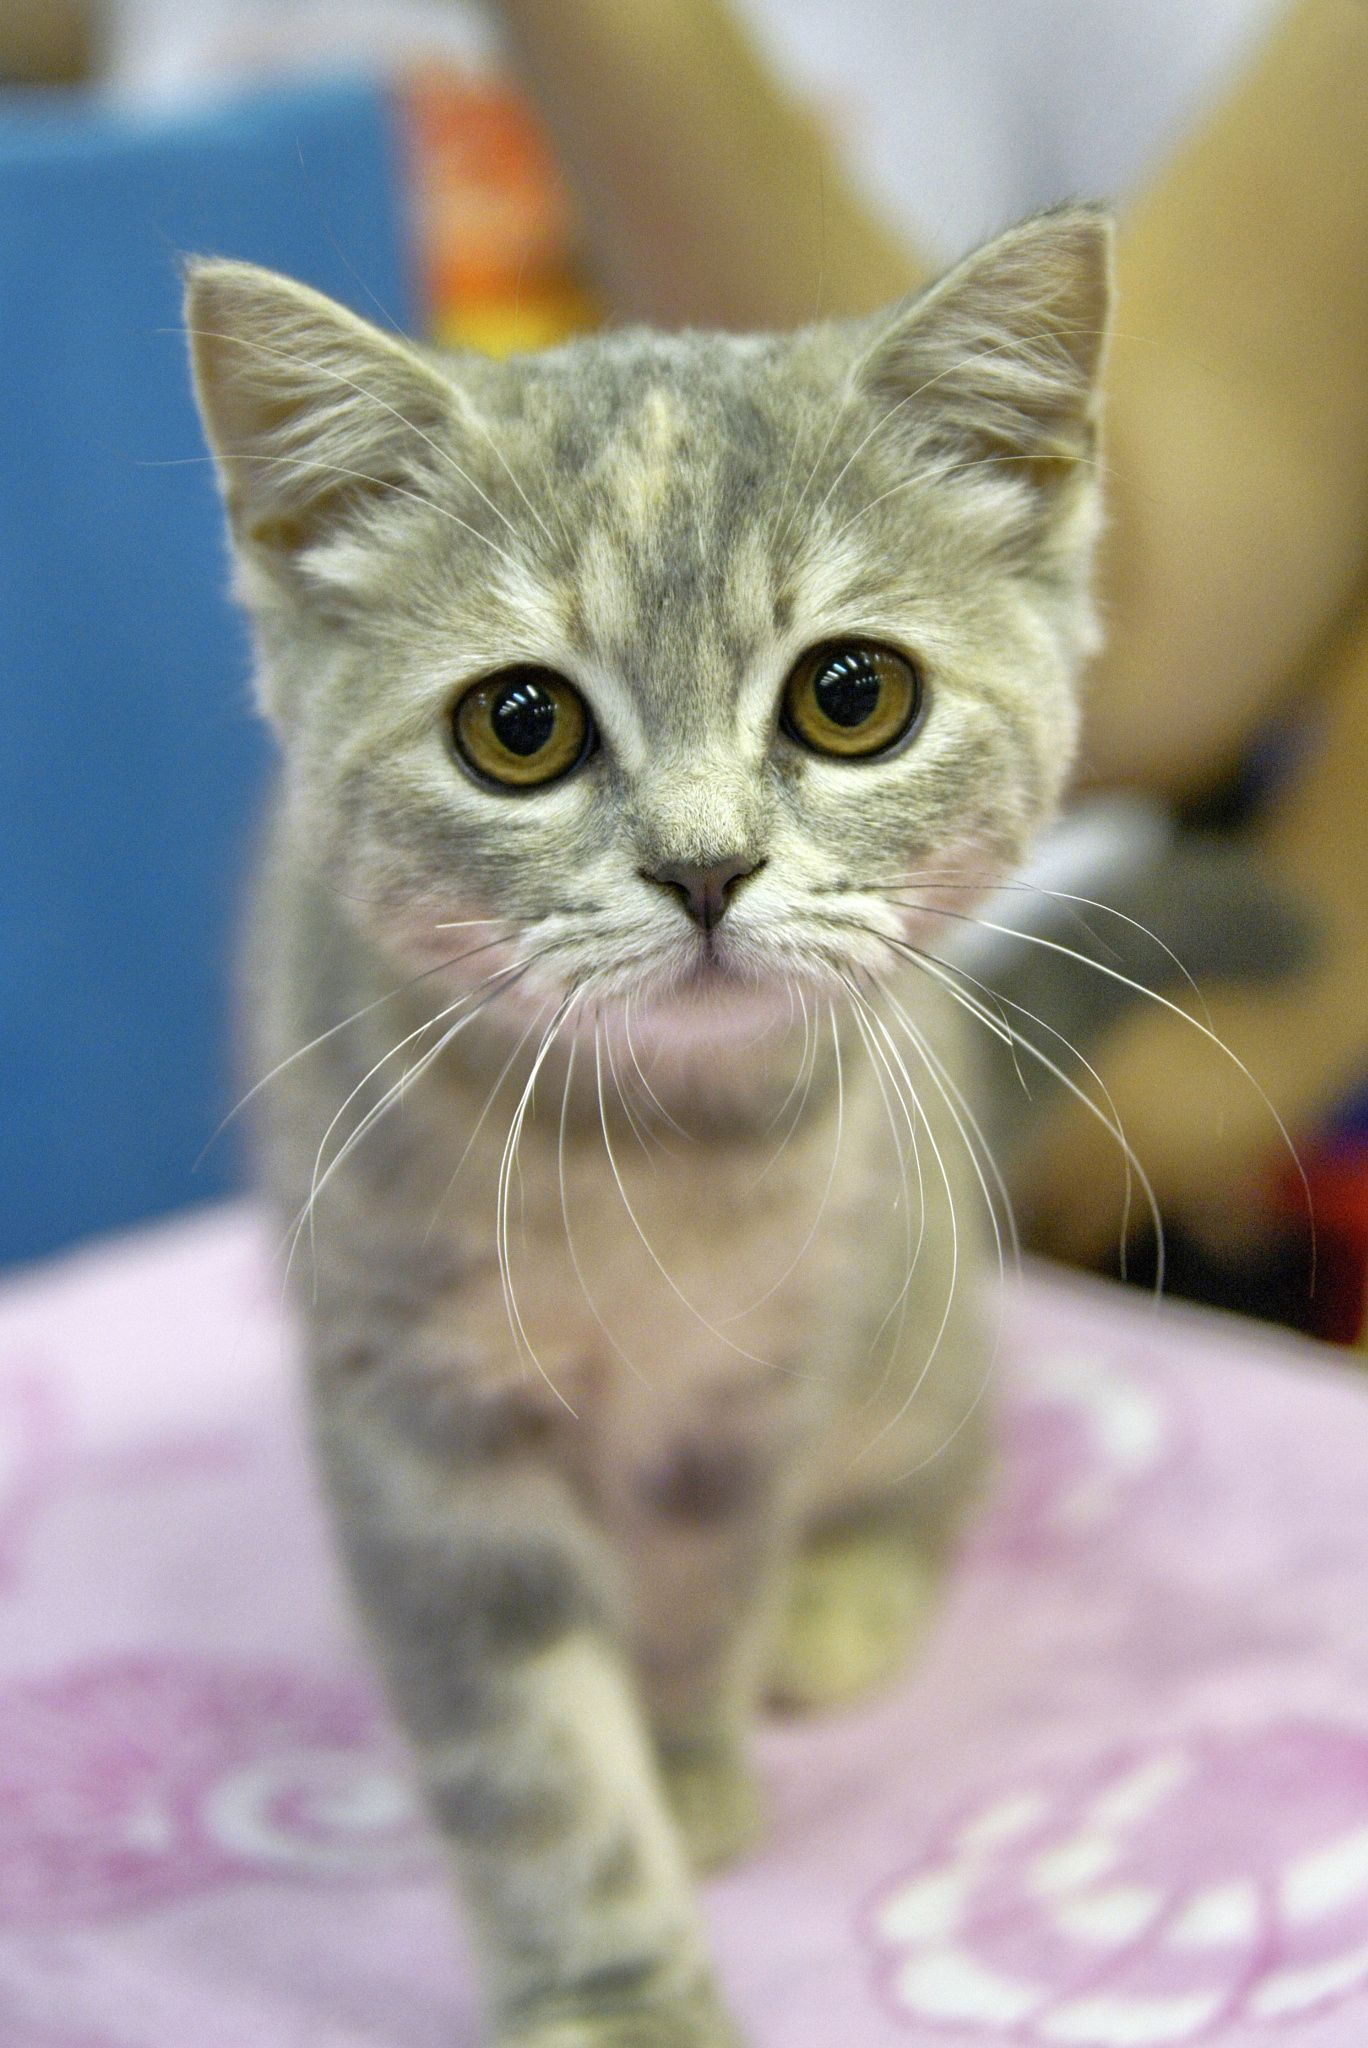 Kitten Next Pretty Cats Kittens Cutest Cute Cats And Dogs